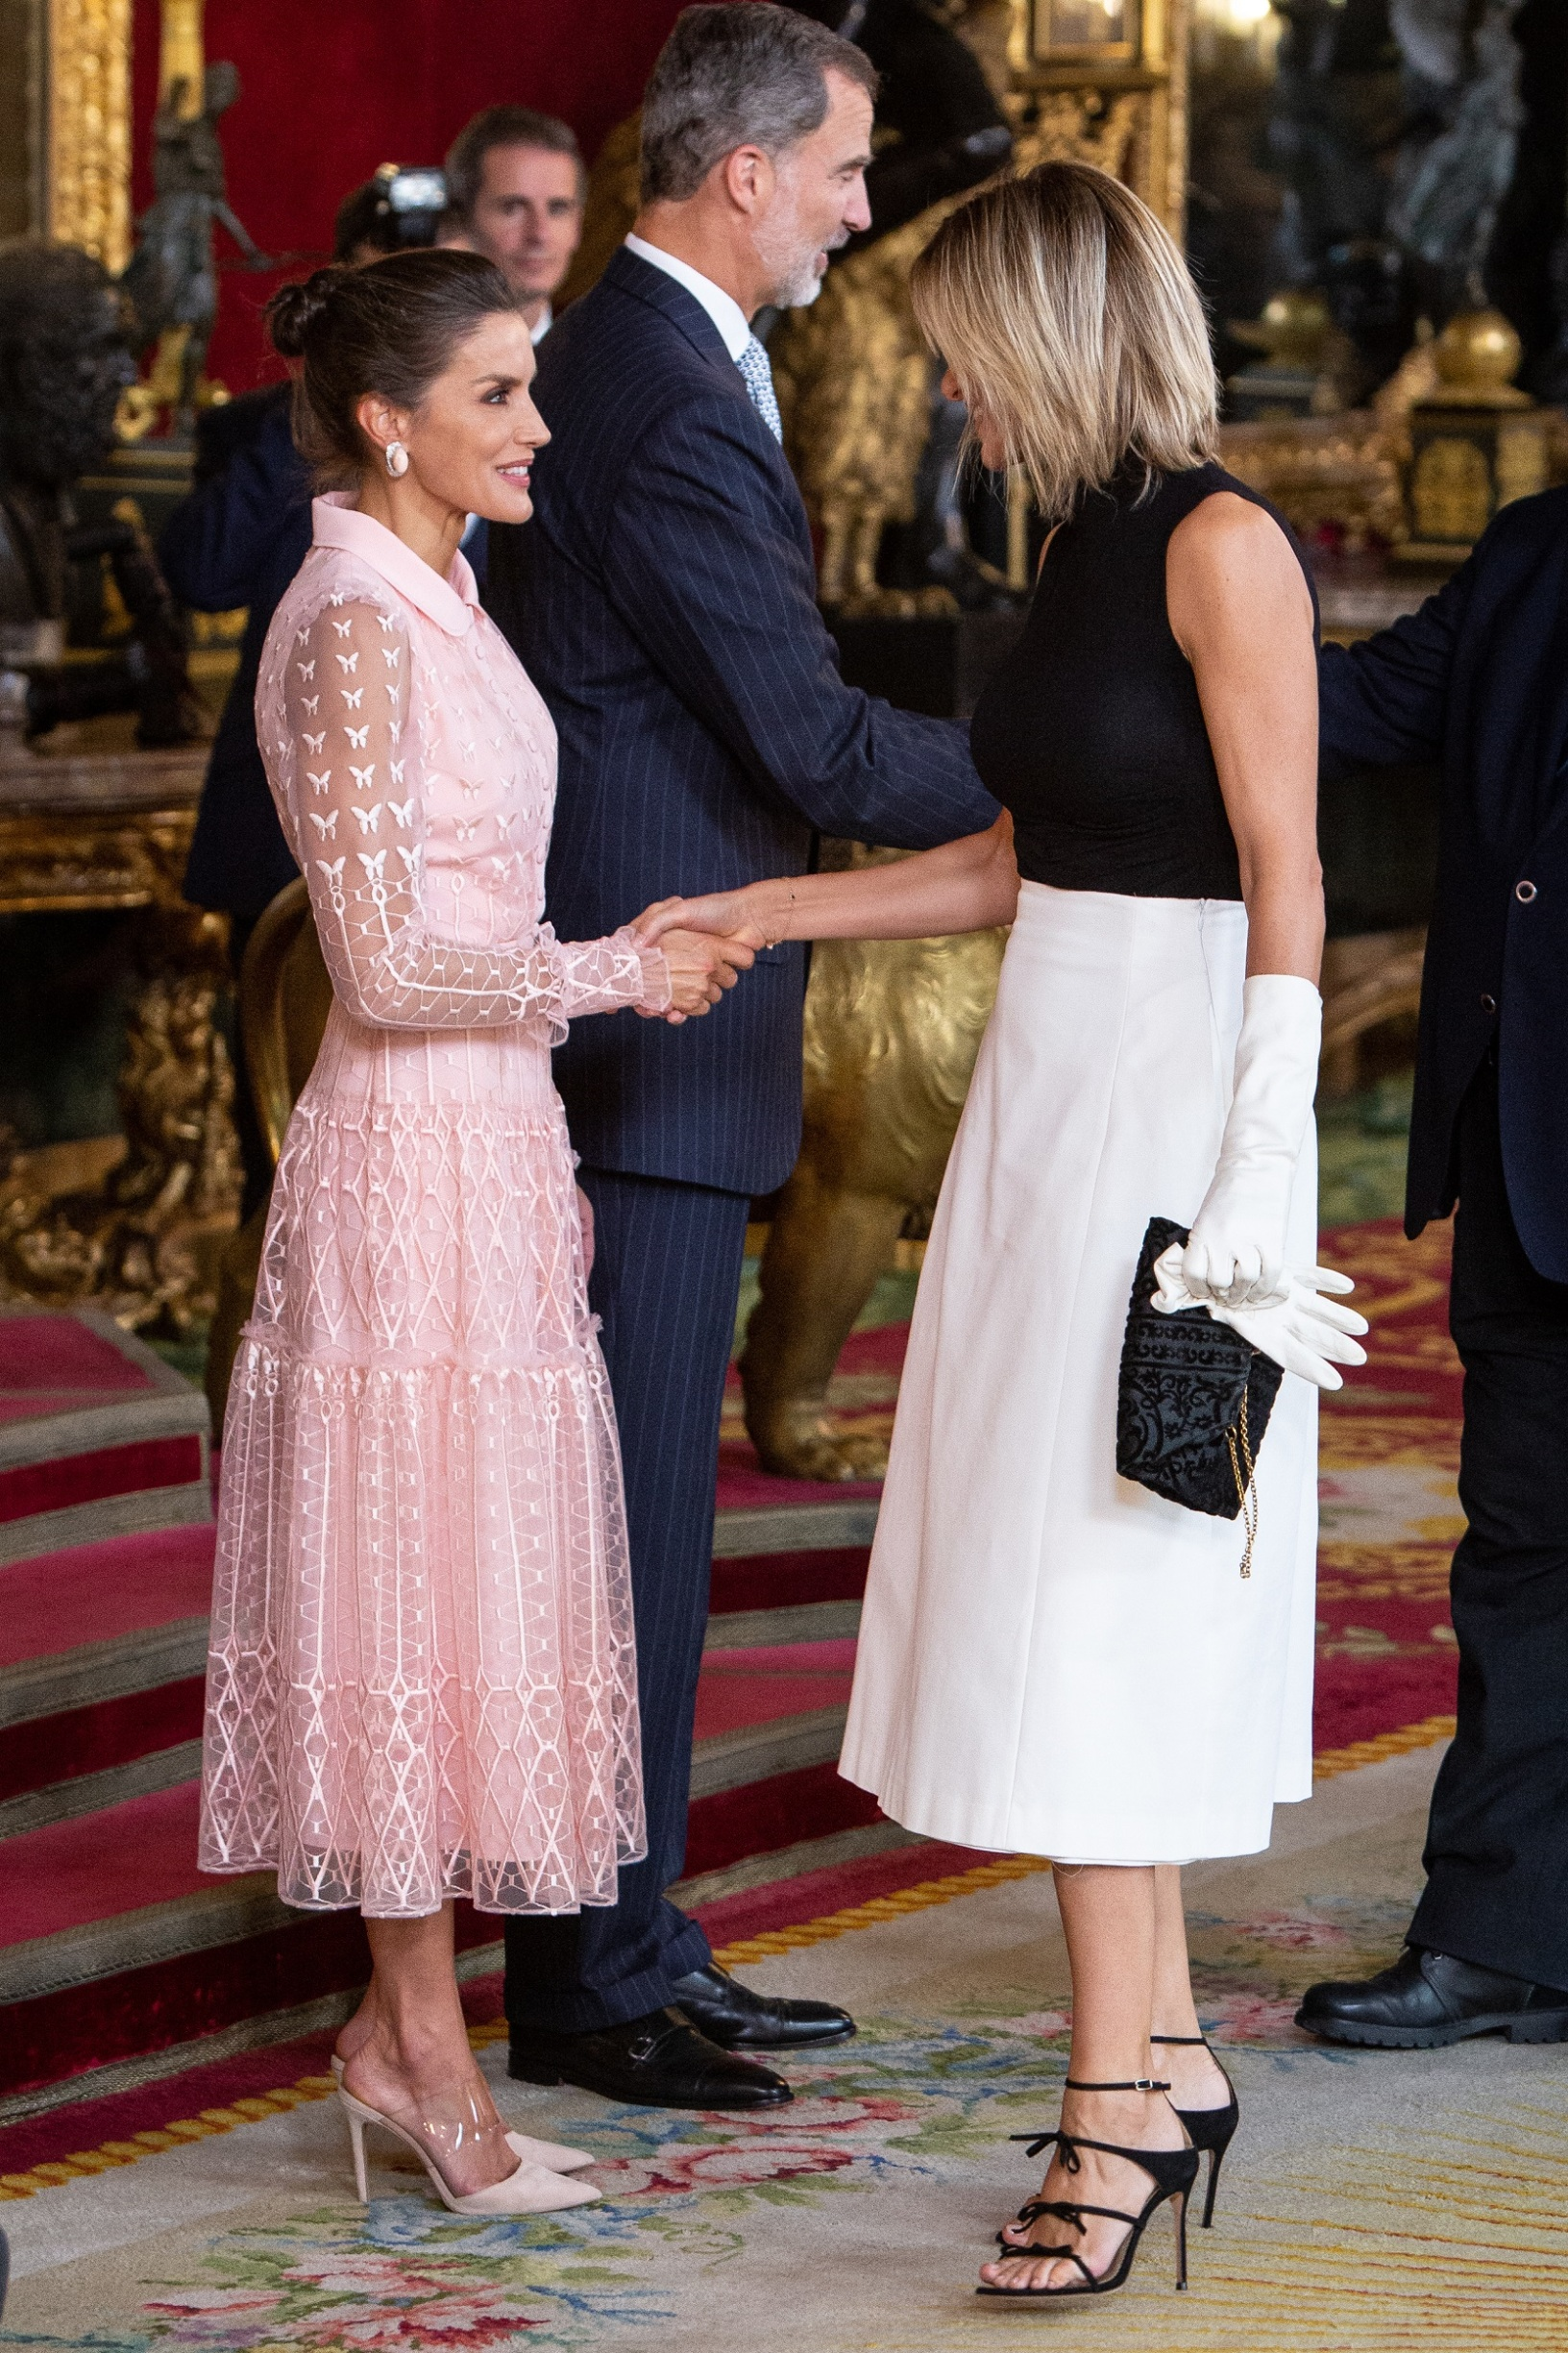 MADRID, SPAIN - OCTOBER 12: (L-R) Queen Letizia of Spain and Susanna Griso attends a reception at the Royal Palace during the National Day on October 12, 2019 in Madrid, Spain. (Photo by Pablo Cuadra/Getty Images)